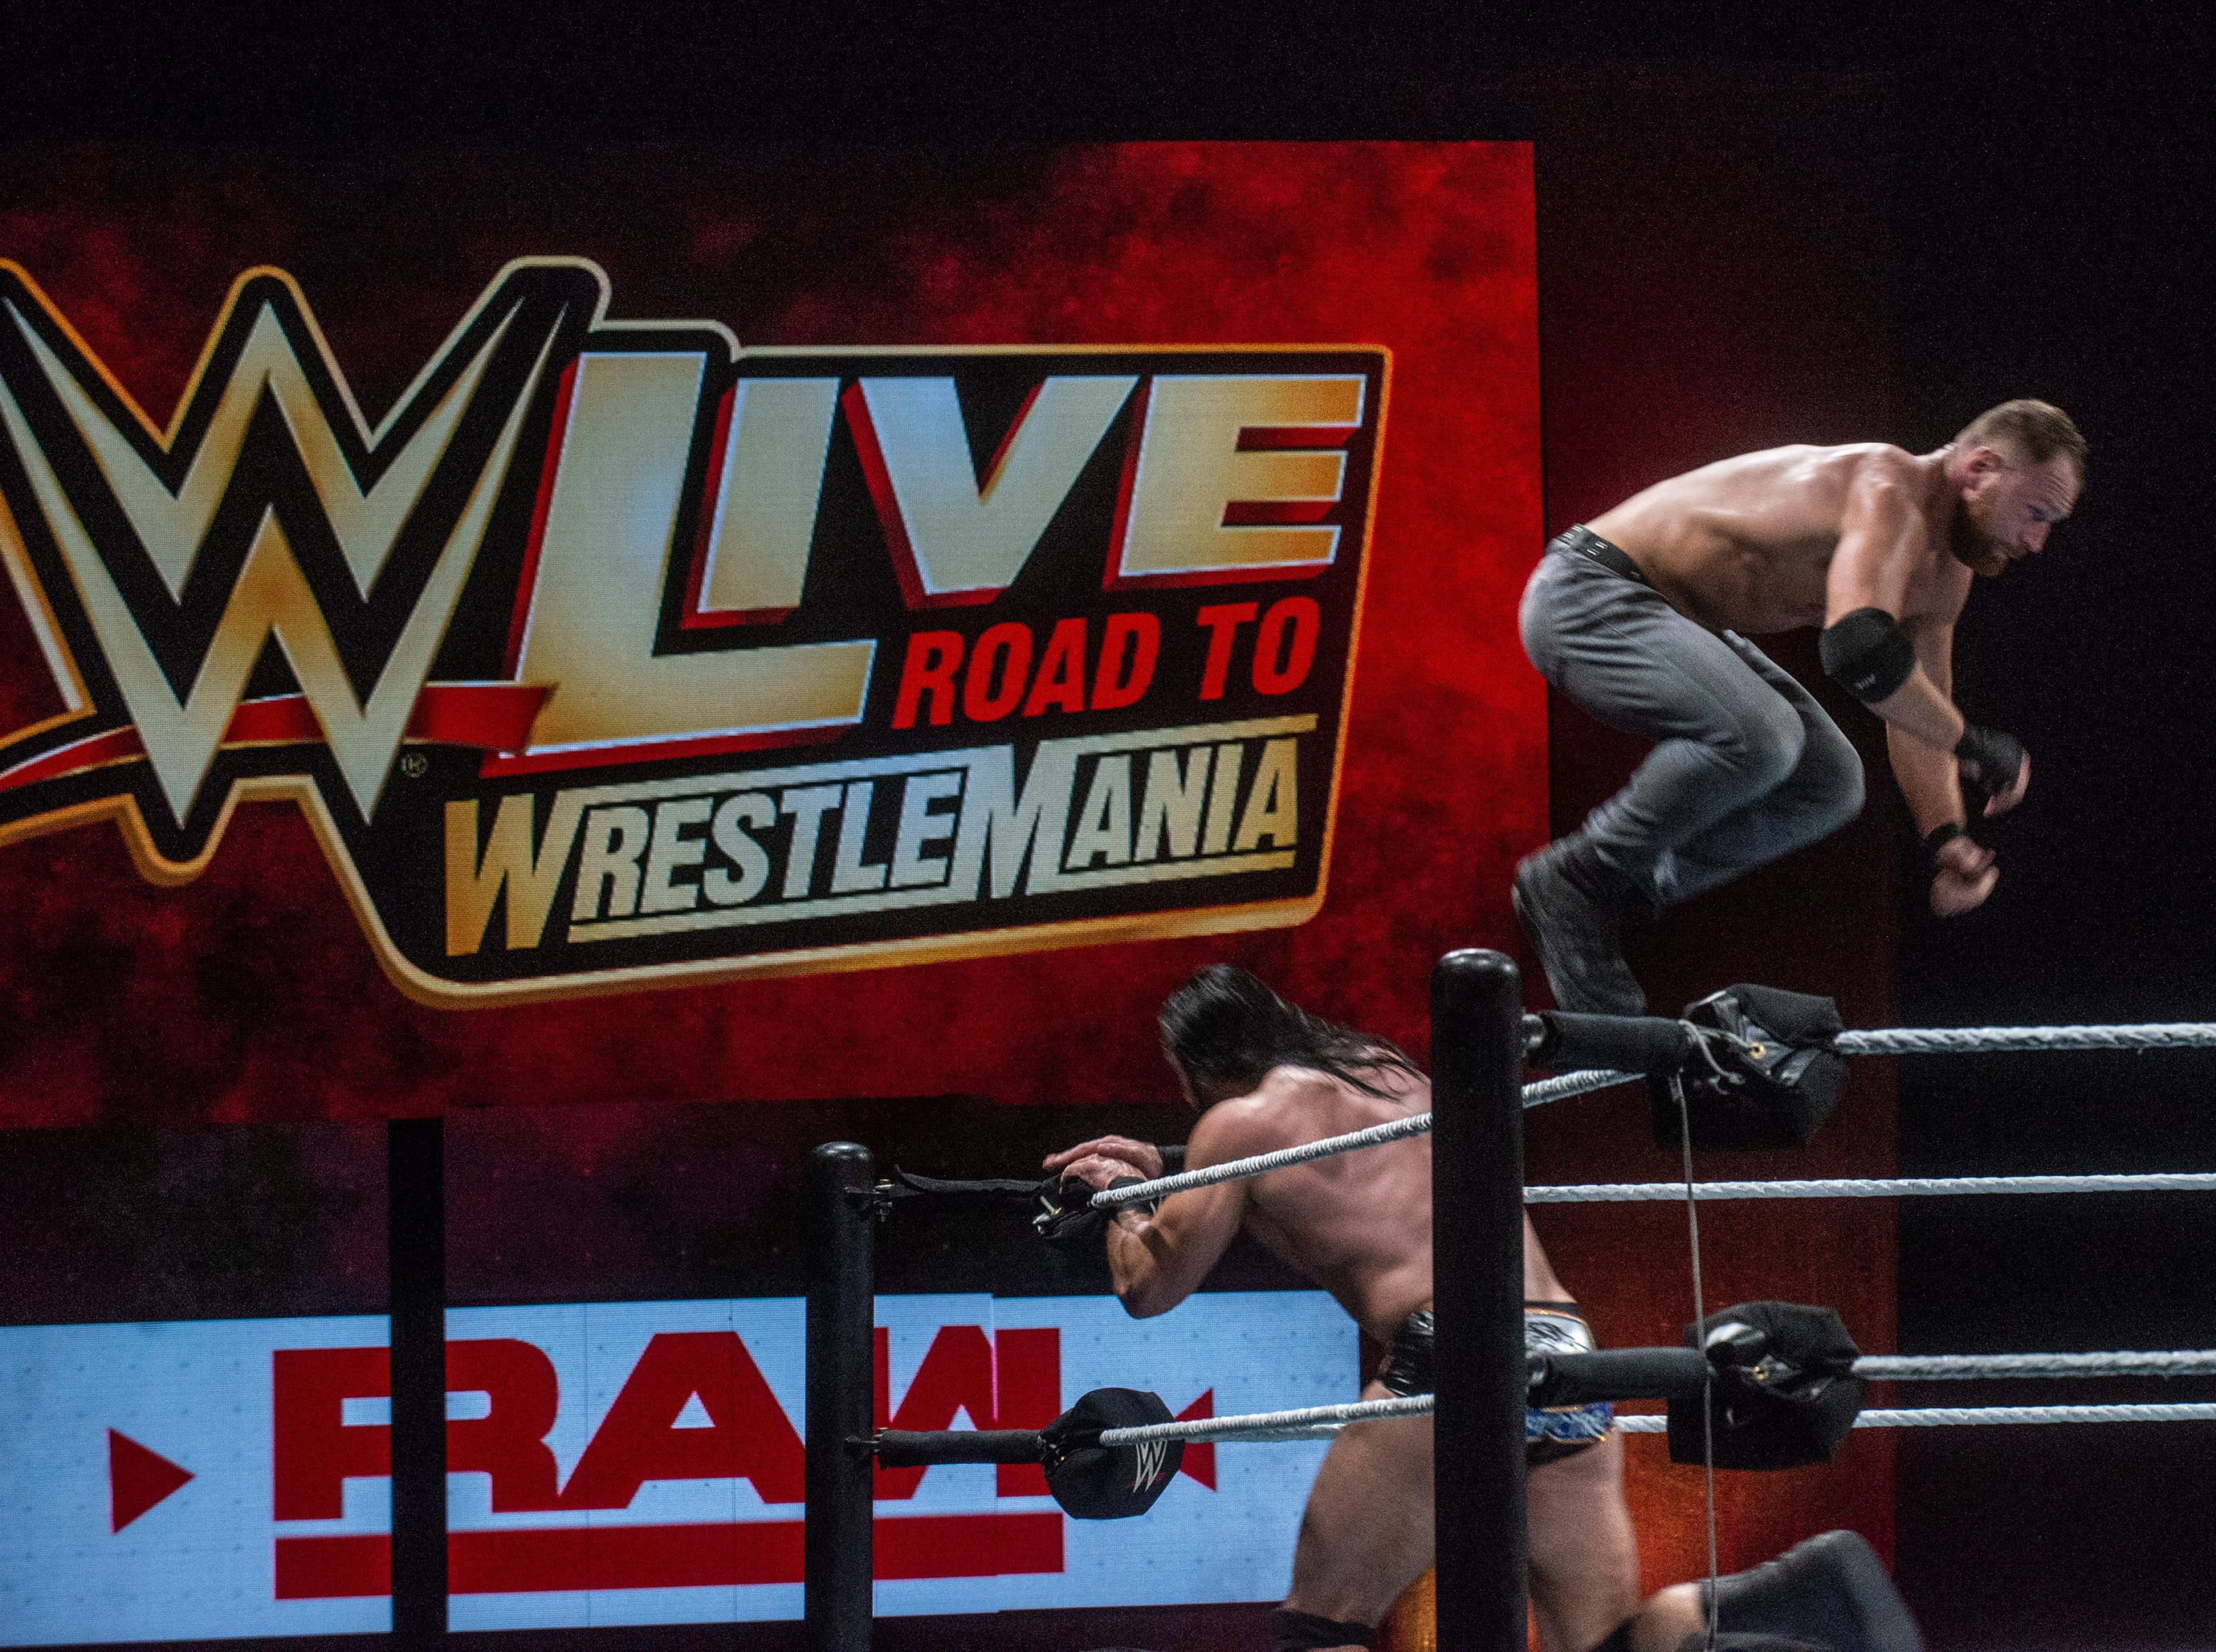 Dean Ambrose goes off the top rope against Drew McIntyre. WWE Live Road to Wrestlemania came to Garrett Coliseum in Montgomery on Sunday, Feb. 24, 2019.